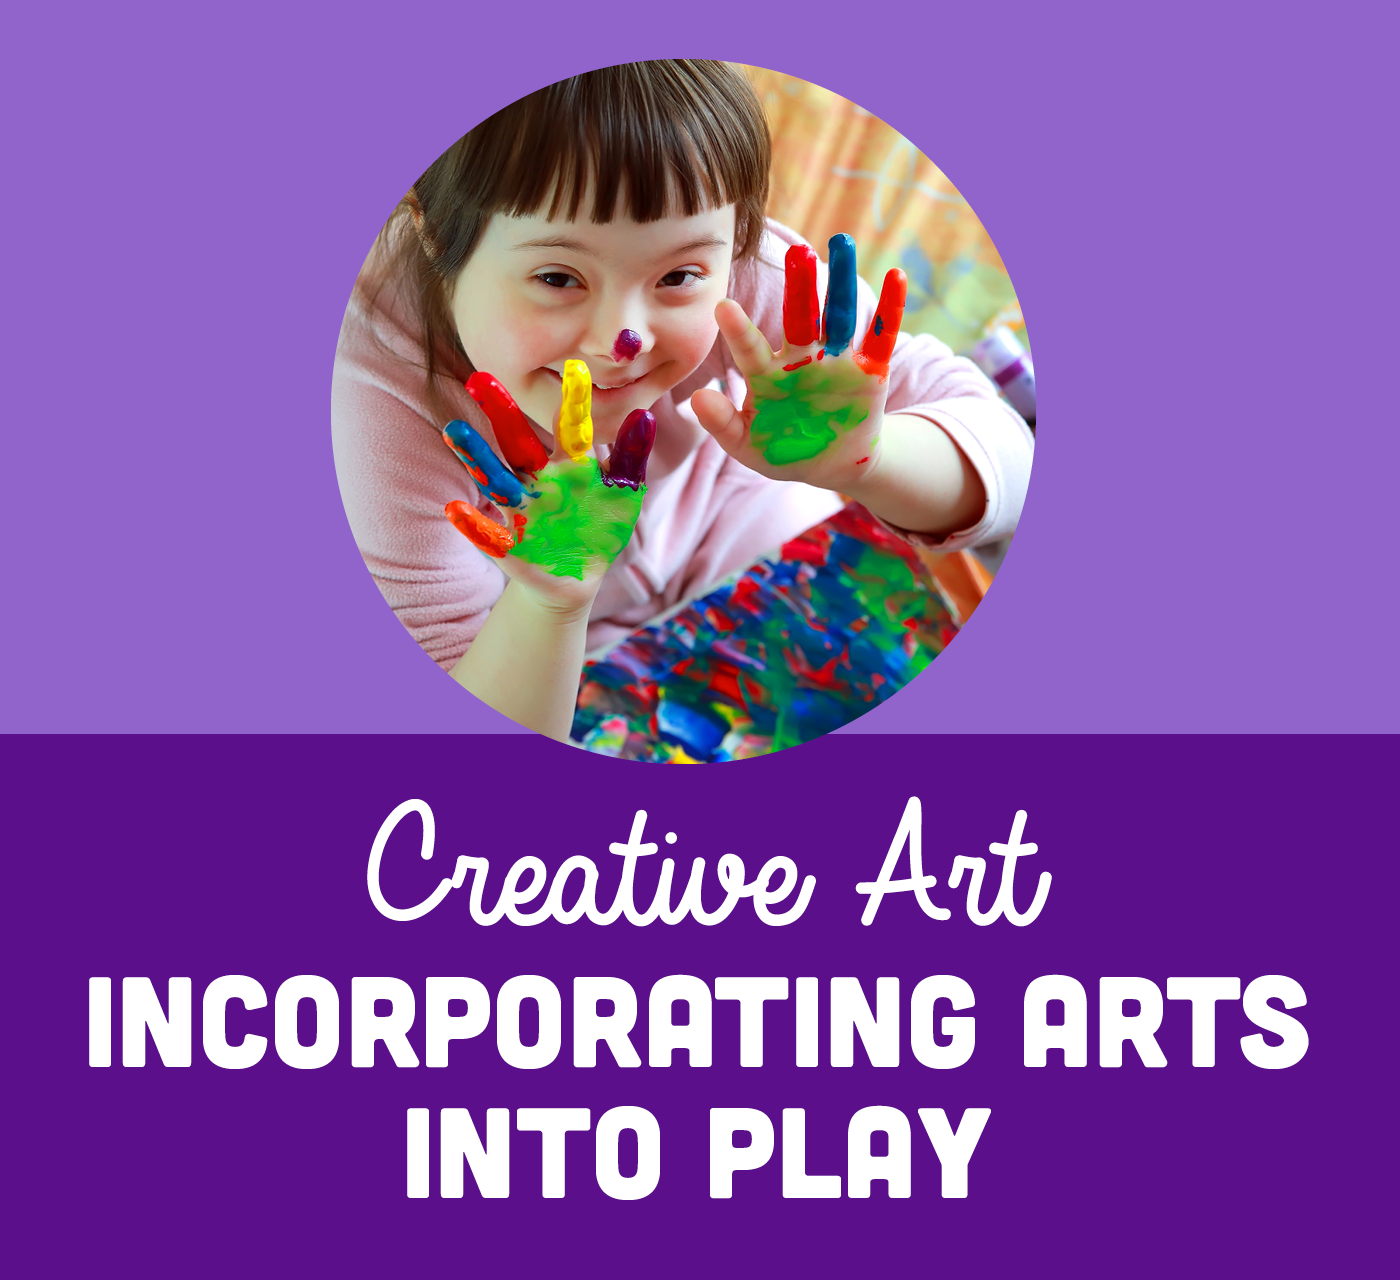 Incorporating Arts into Play At Home